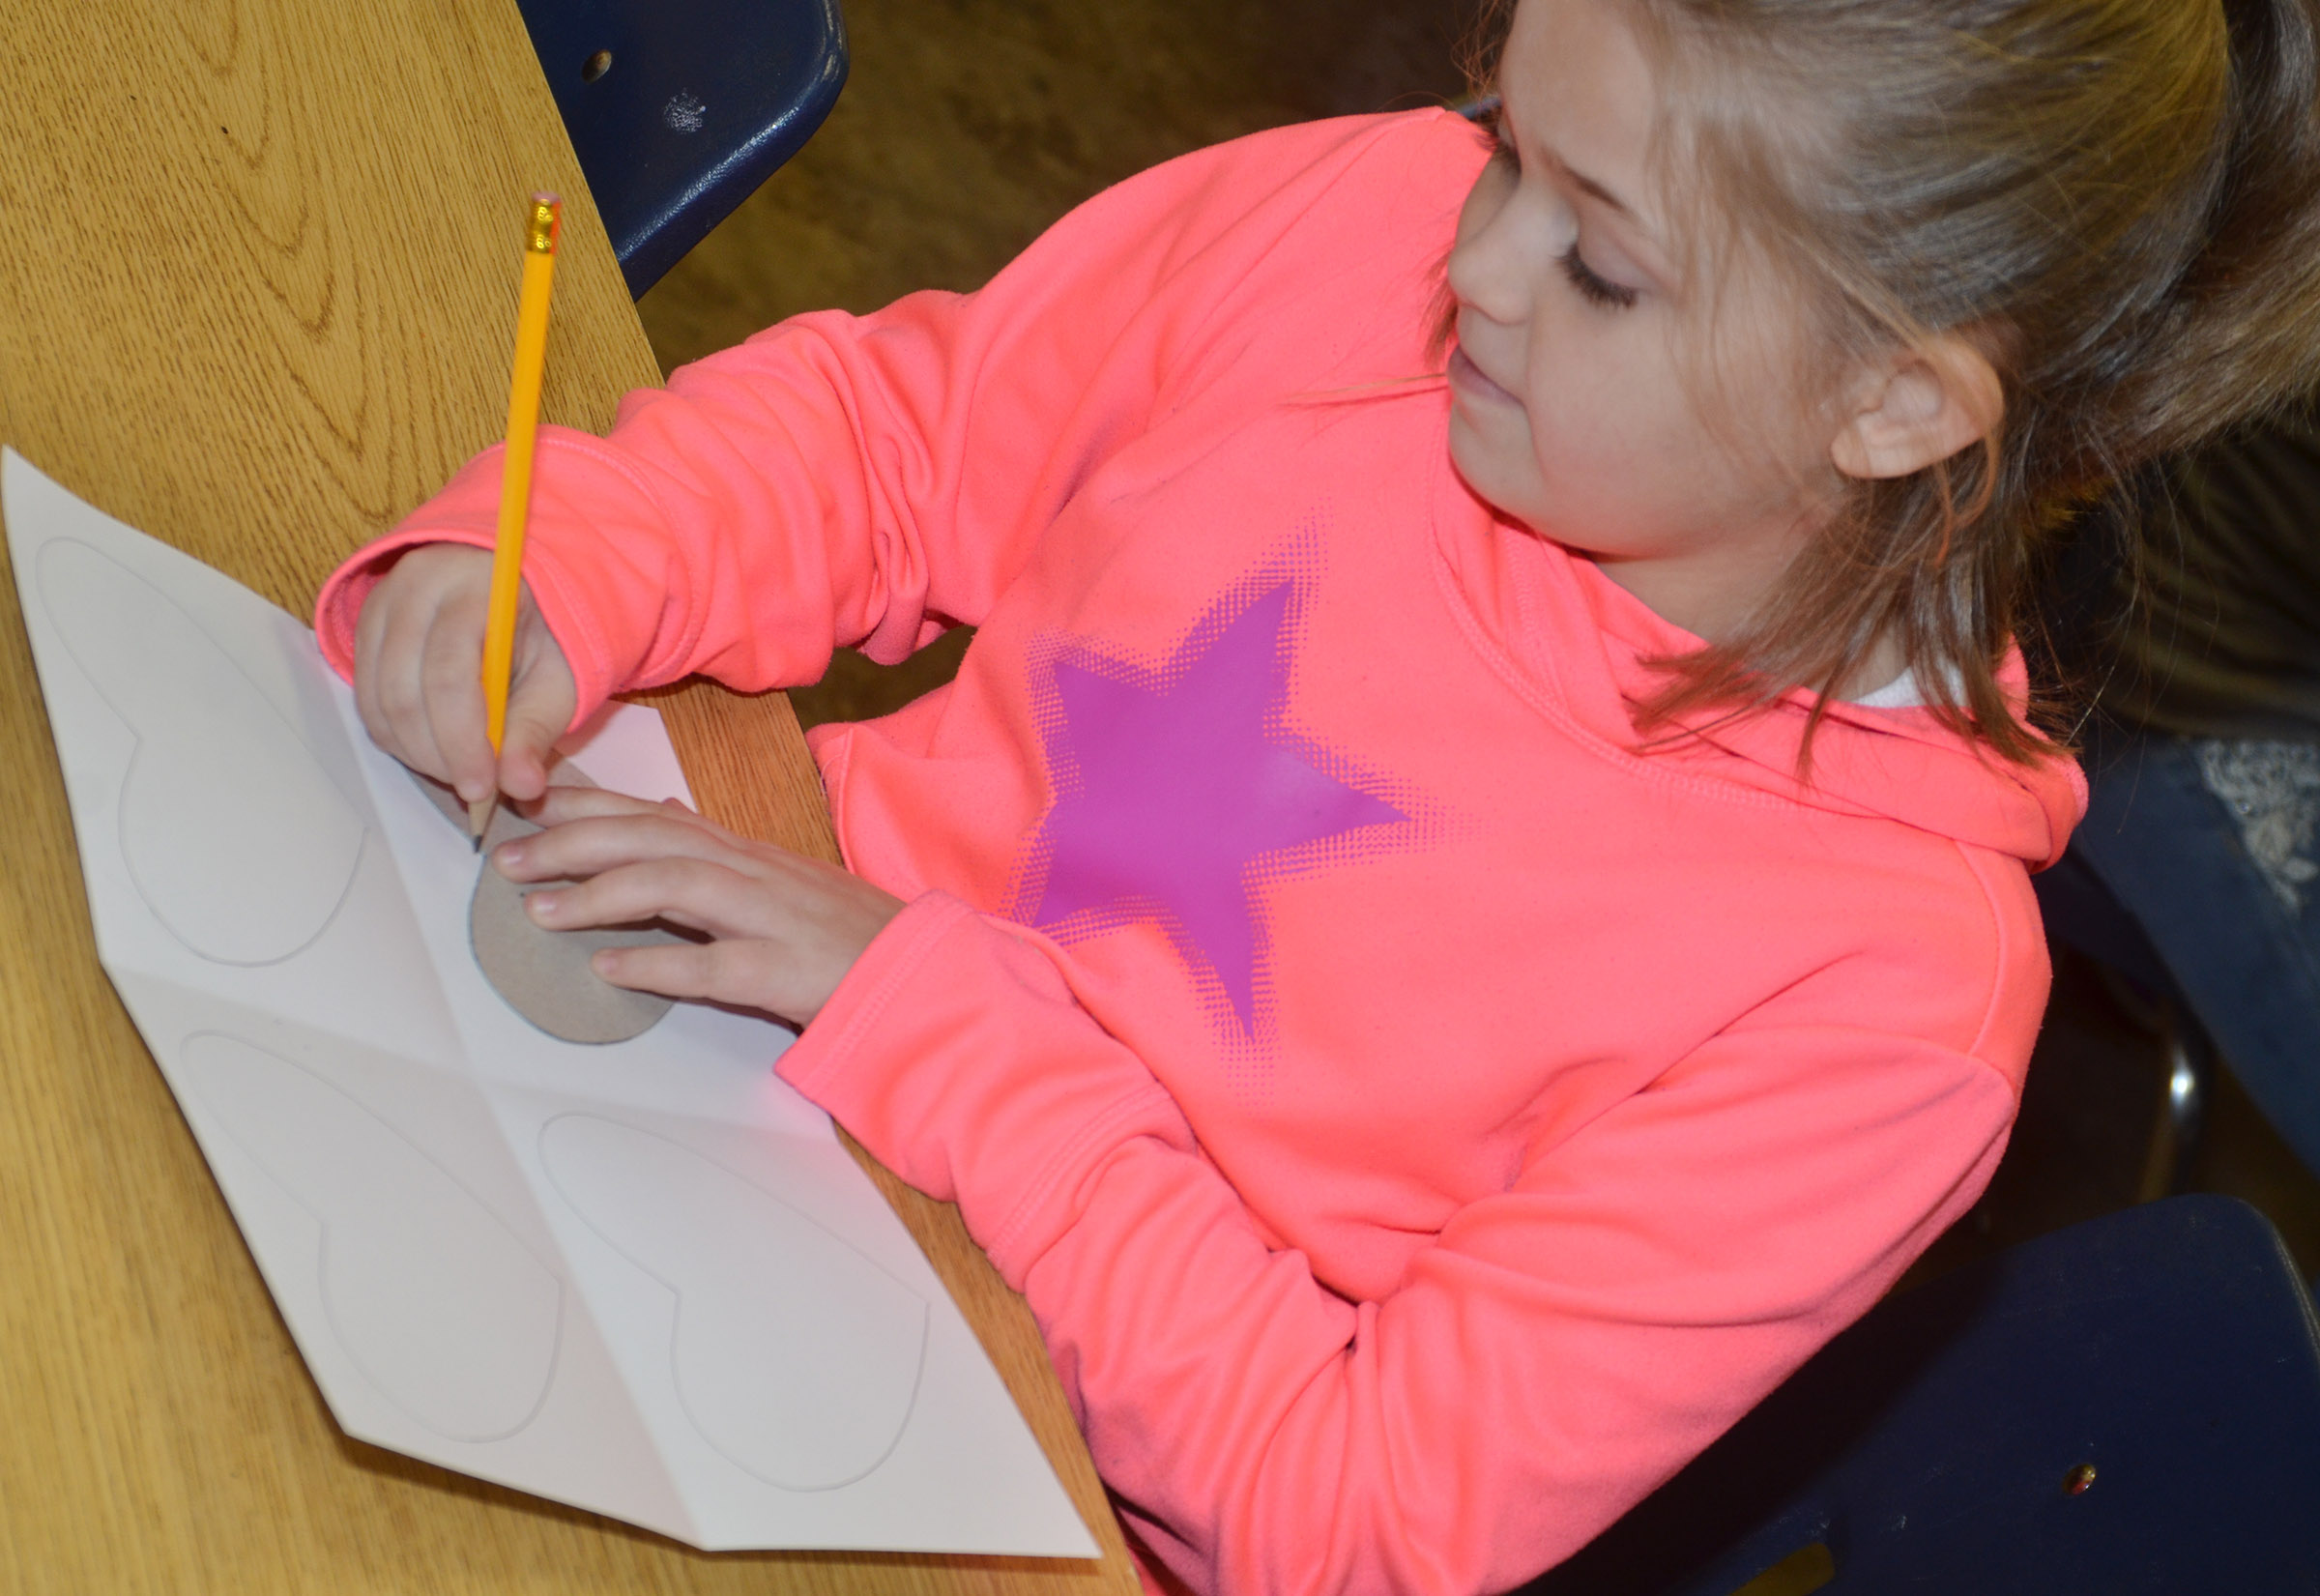 CES fourth-grader Chyanne Christie traces a heart as she makes her pop art.